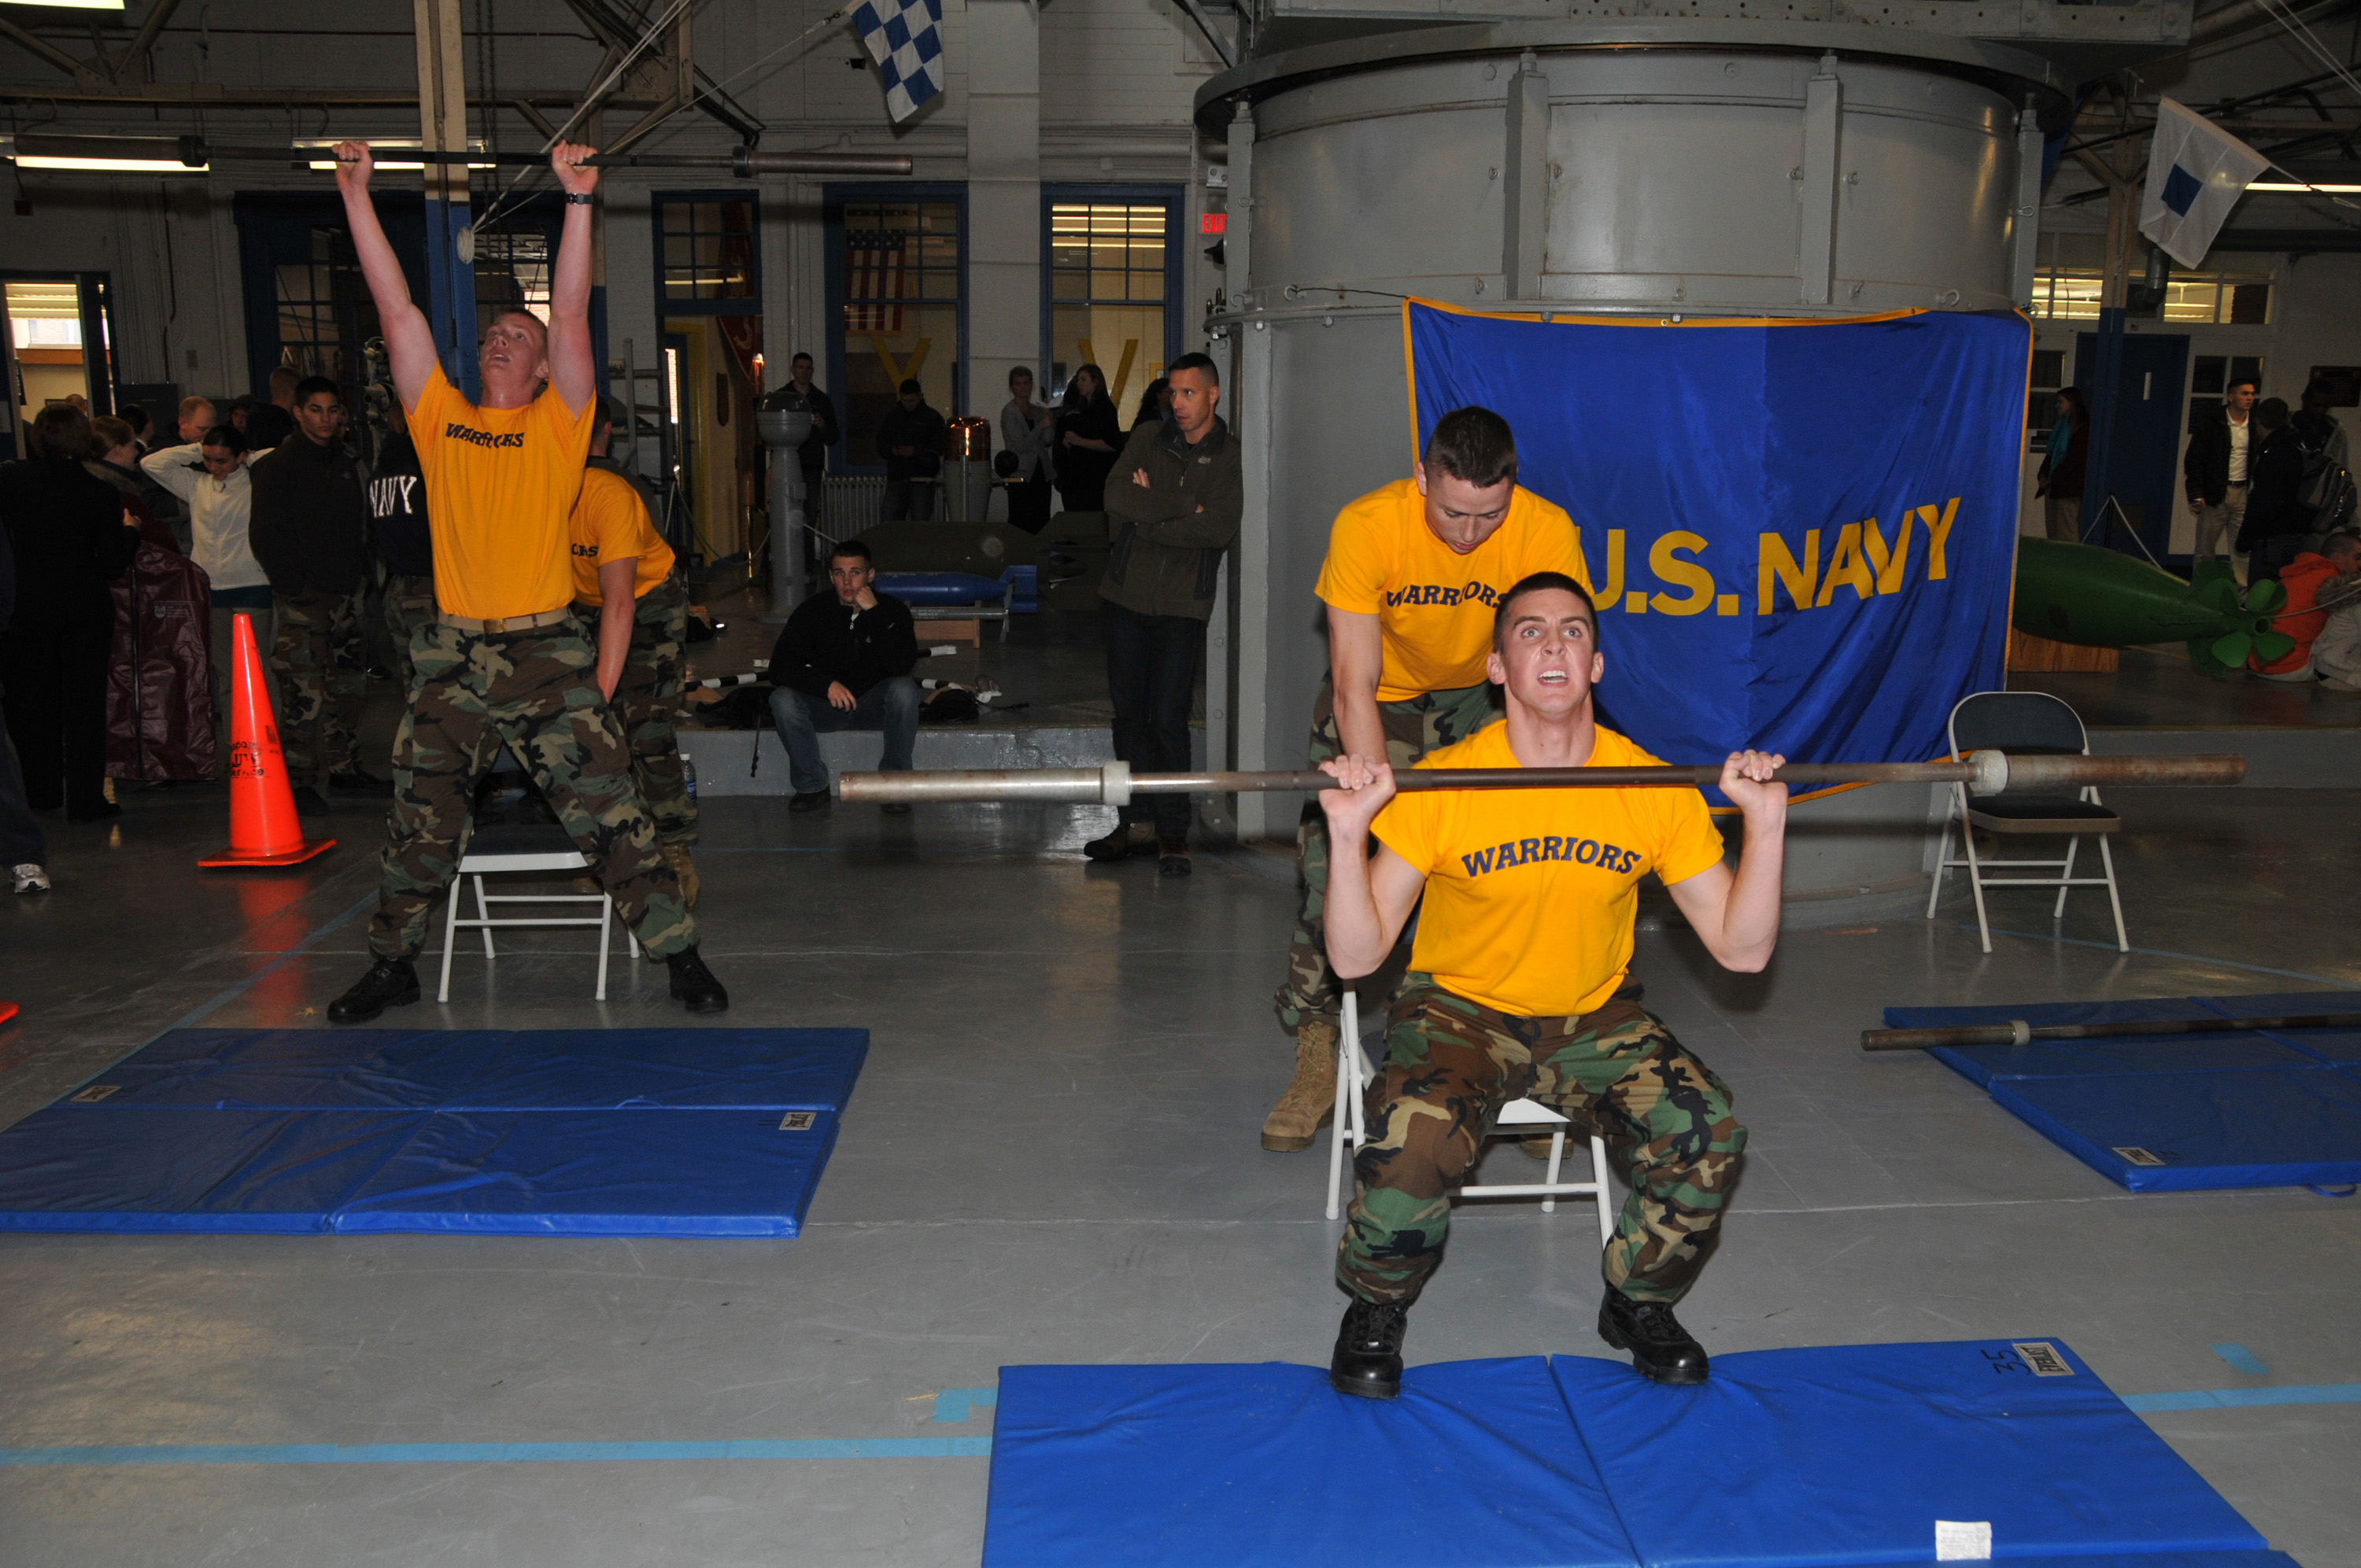 File:US Navy 091010-N-8848T-888 Marquette University Naval ROTC ...